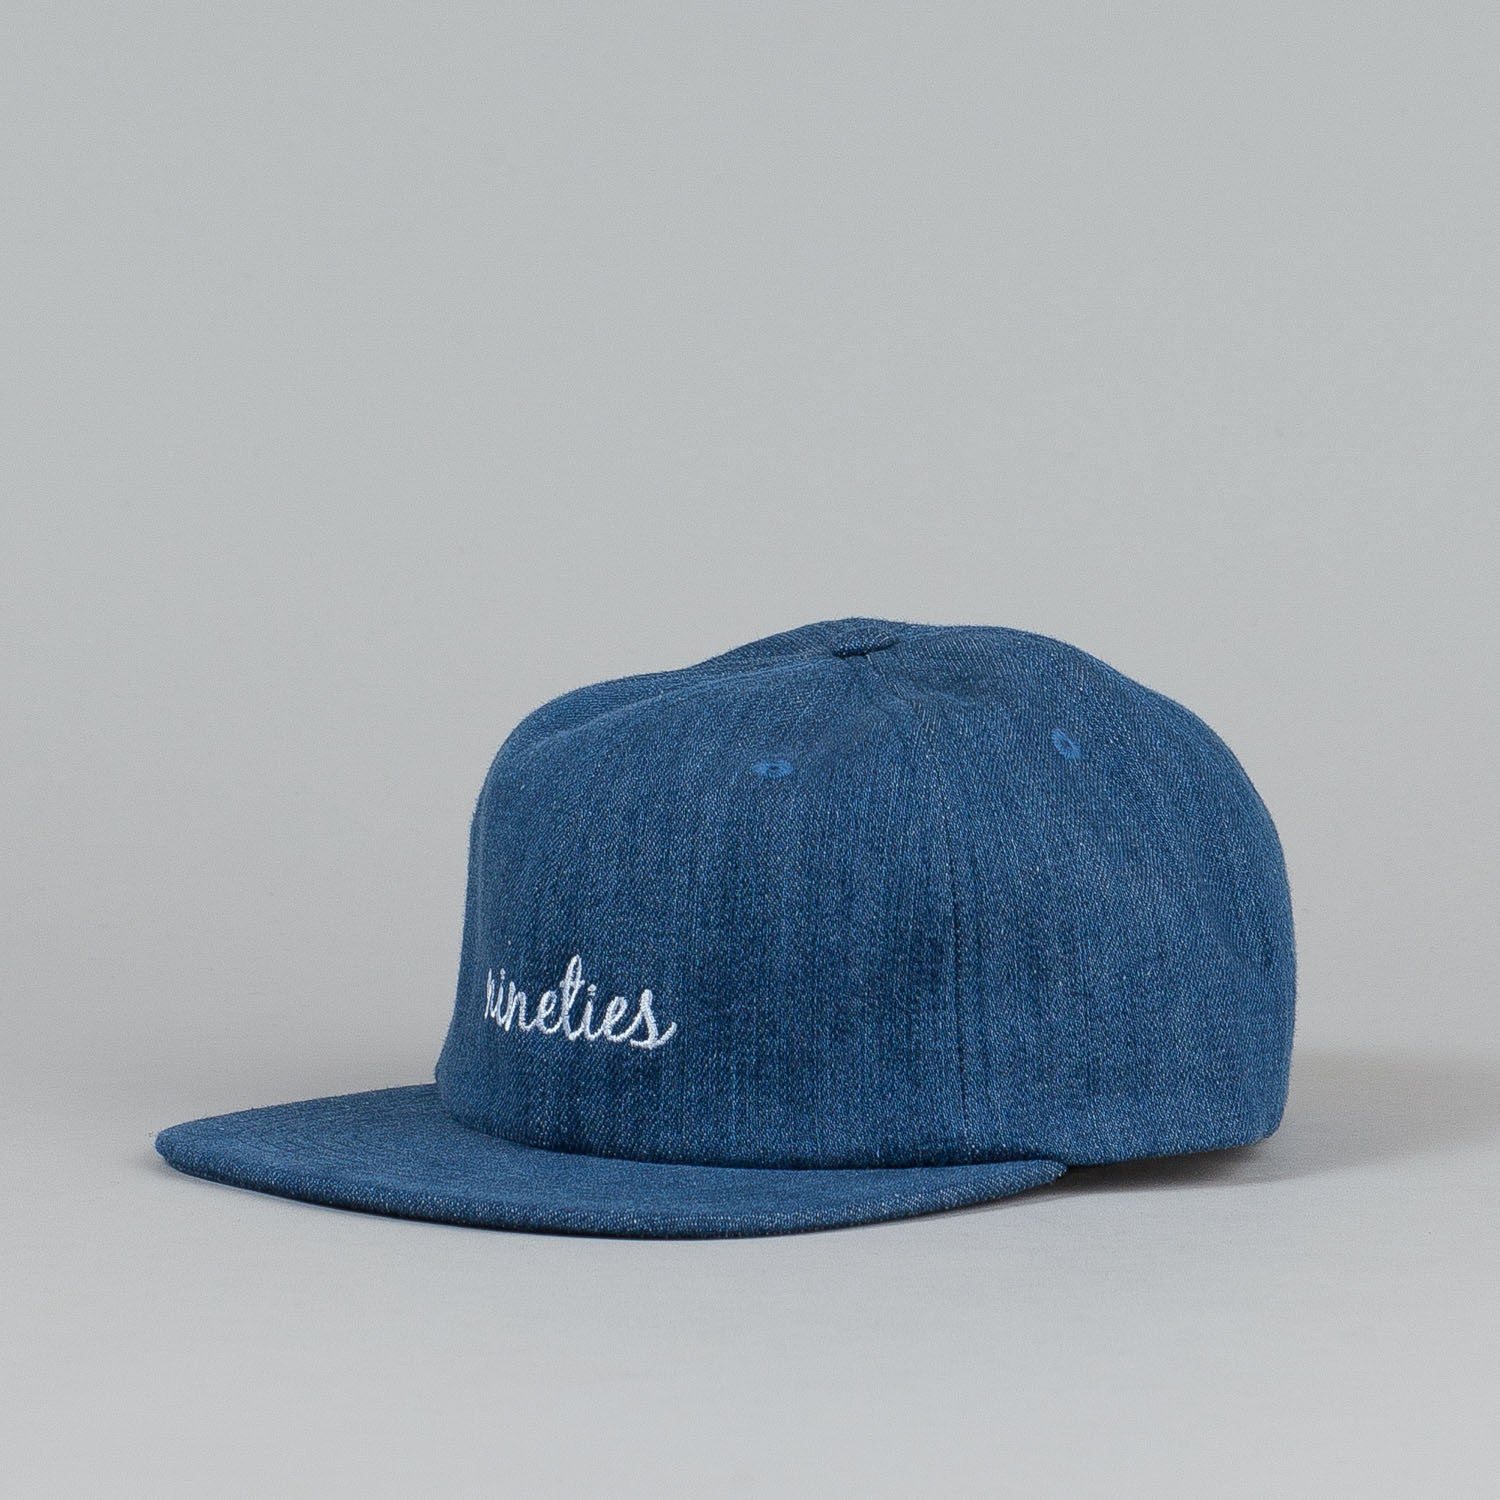 Post Antifit 90's 6 Panel Denim Cap Navy